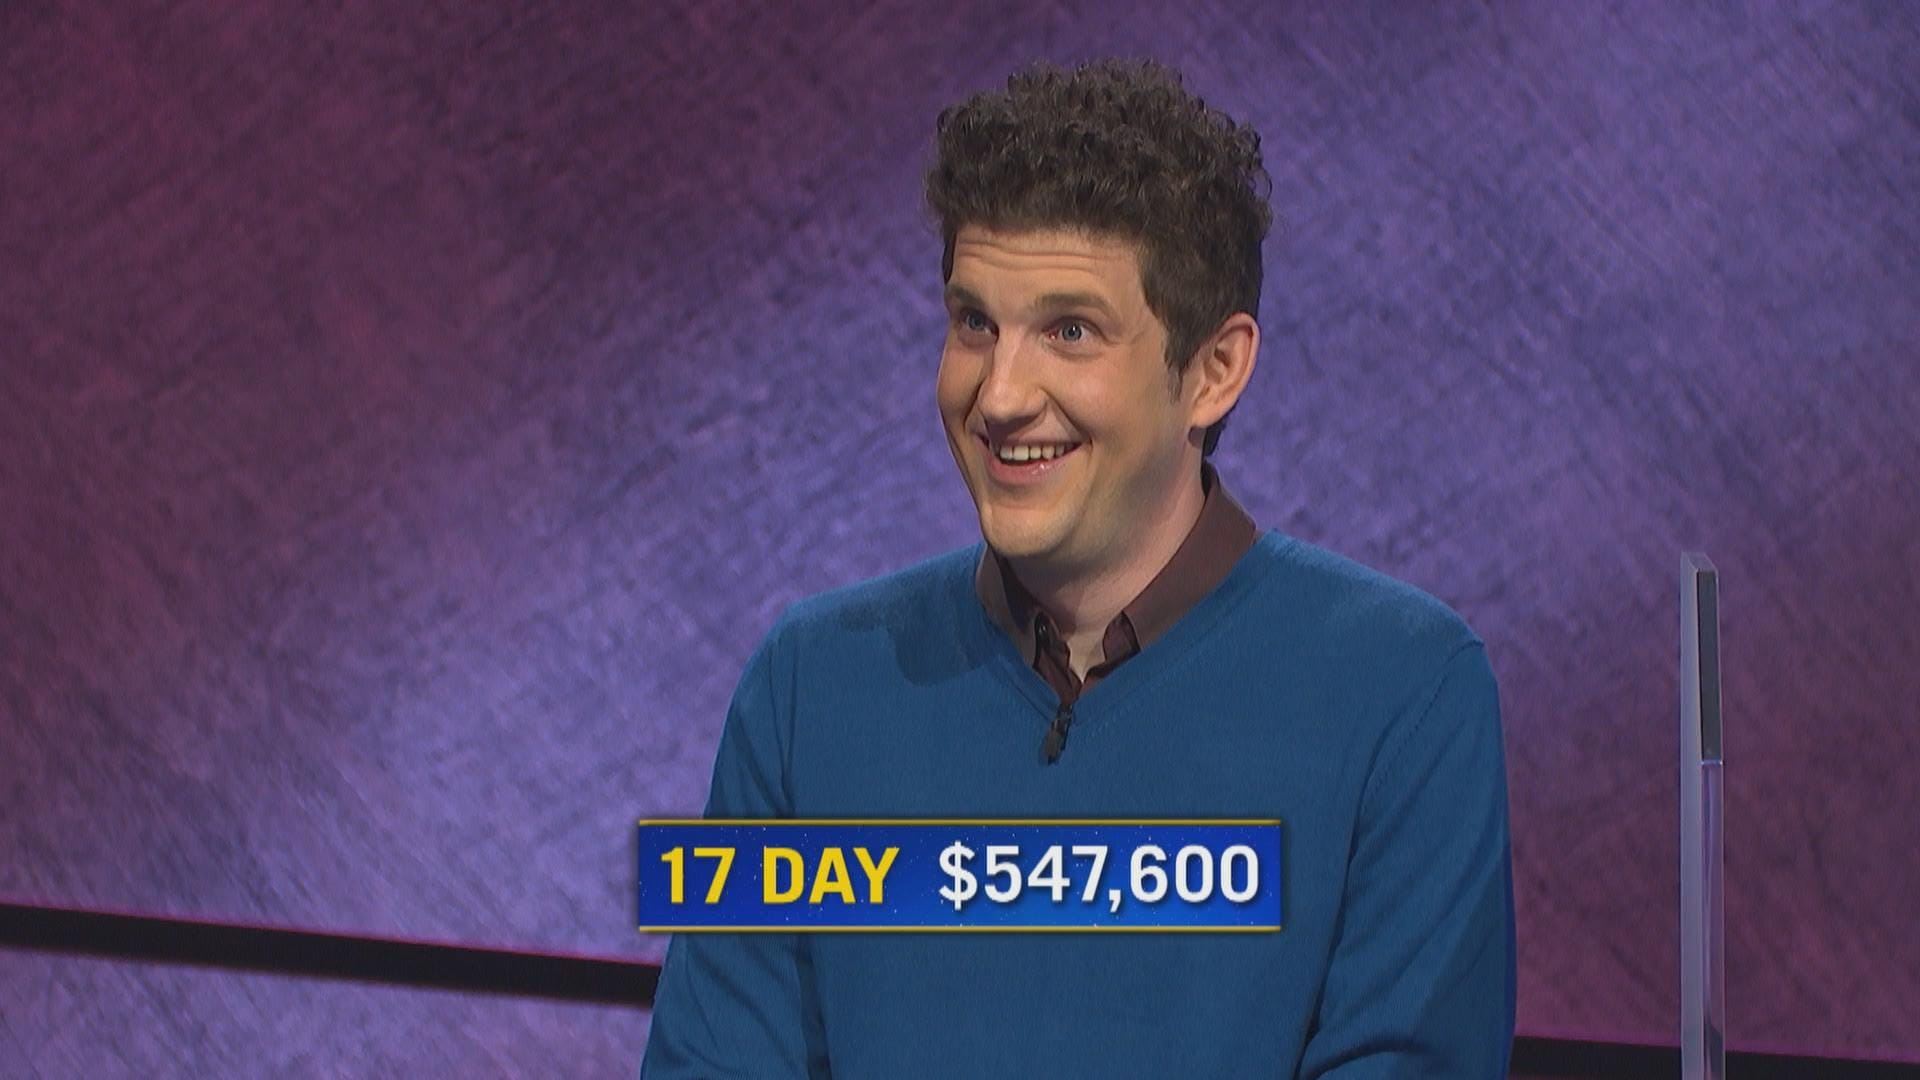 Jeopardy!  champion Matt Amodio on his tactics for winning:  I never endanger the game